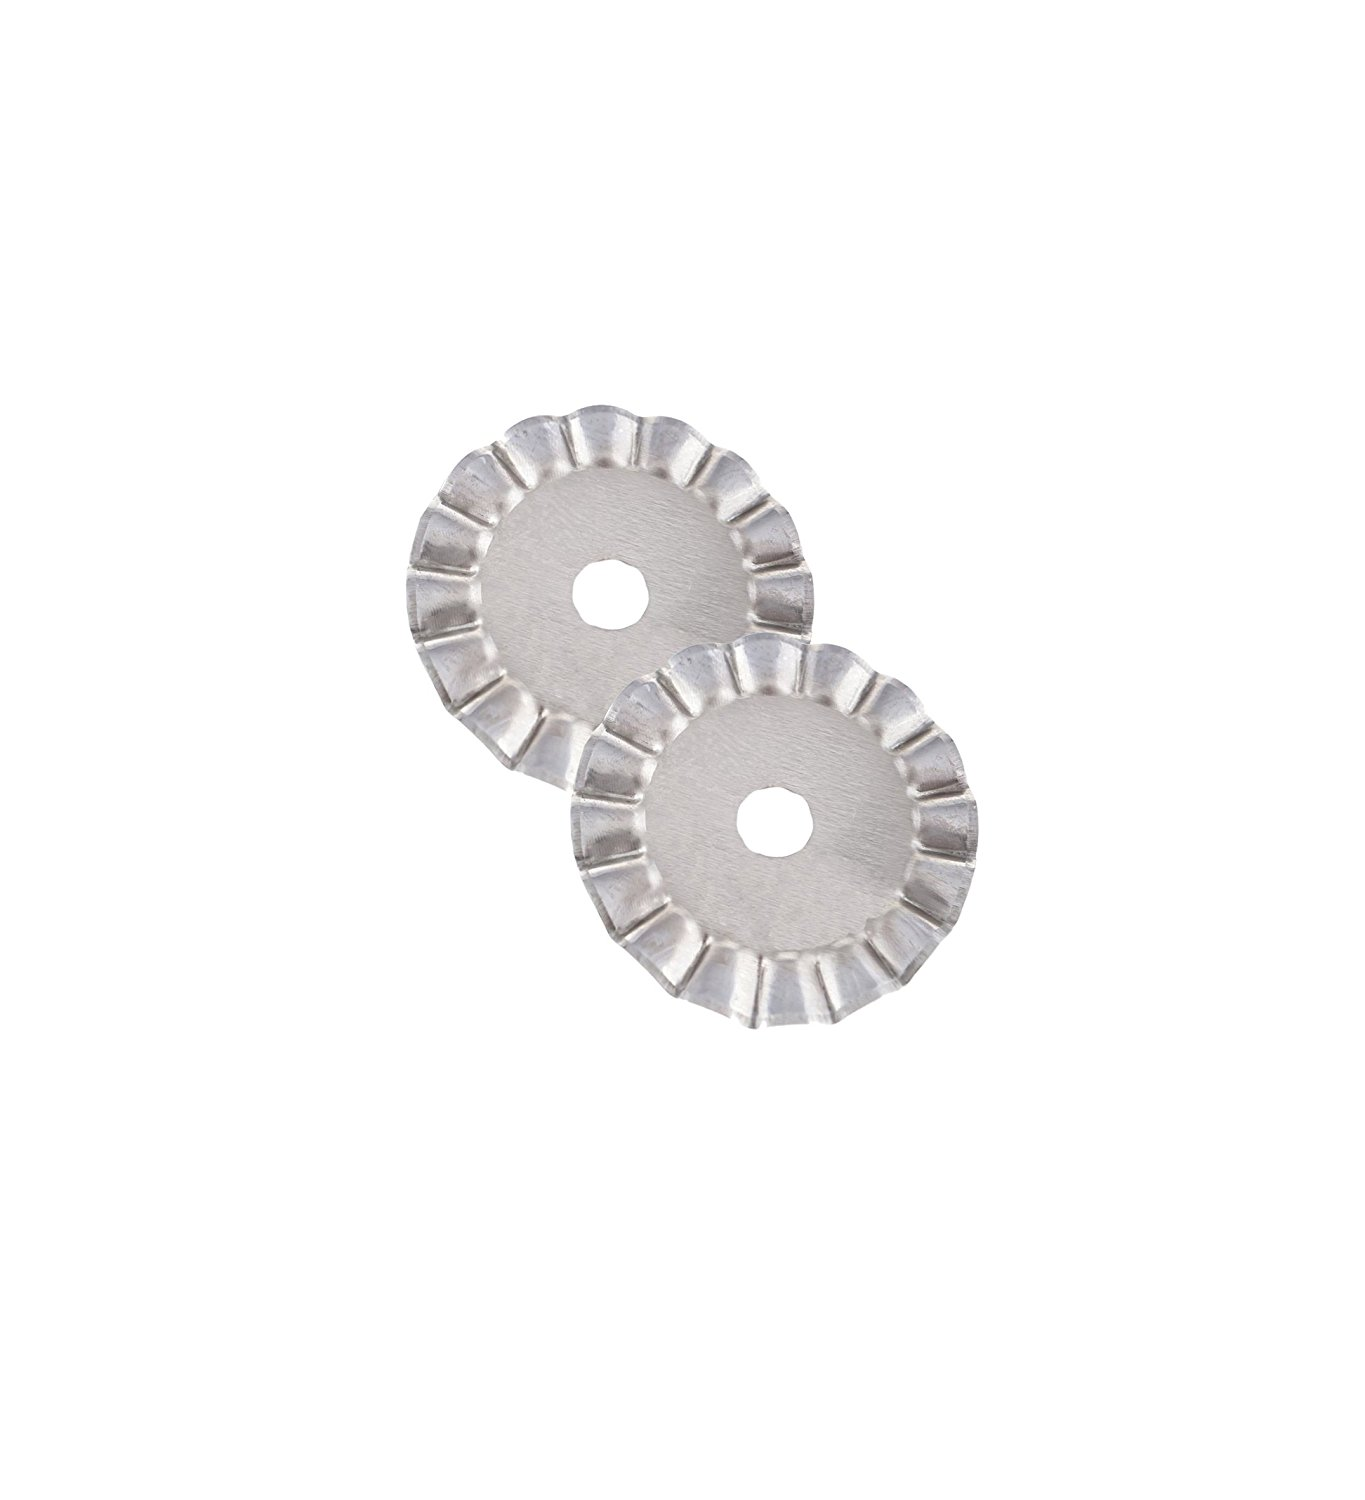 45mm Decorative Rotary Cutter Blades, WAVE (2 BLADES), for OLFA, FISKARS, Clover and other Cutters for Quilting, Scrap booking, leather, Vinyl etc from Threadnanny